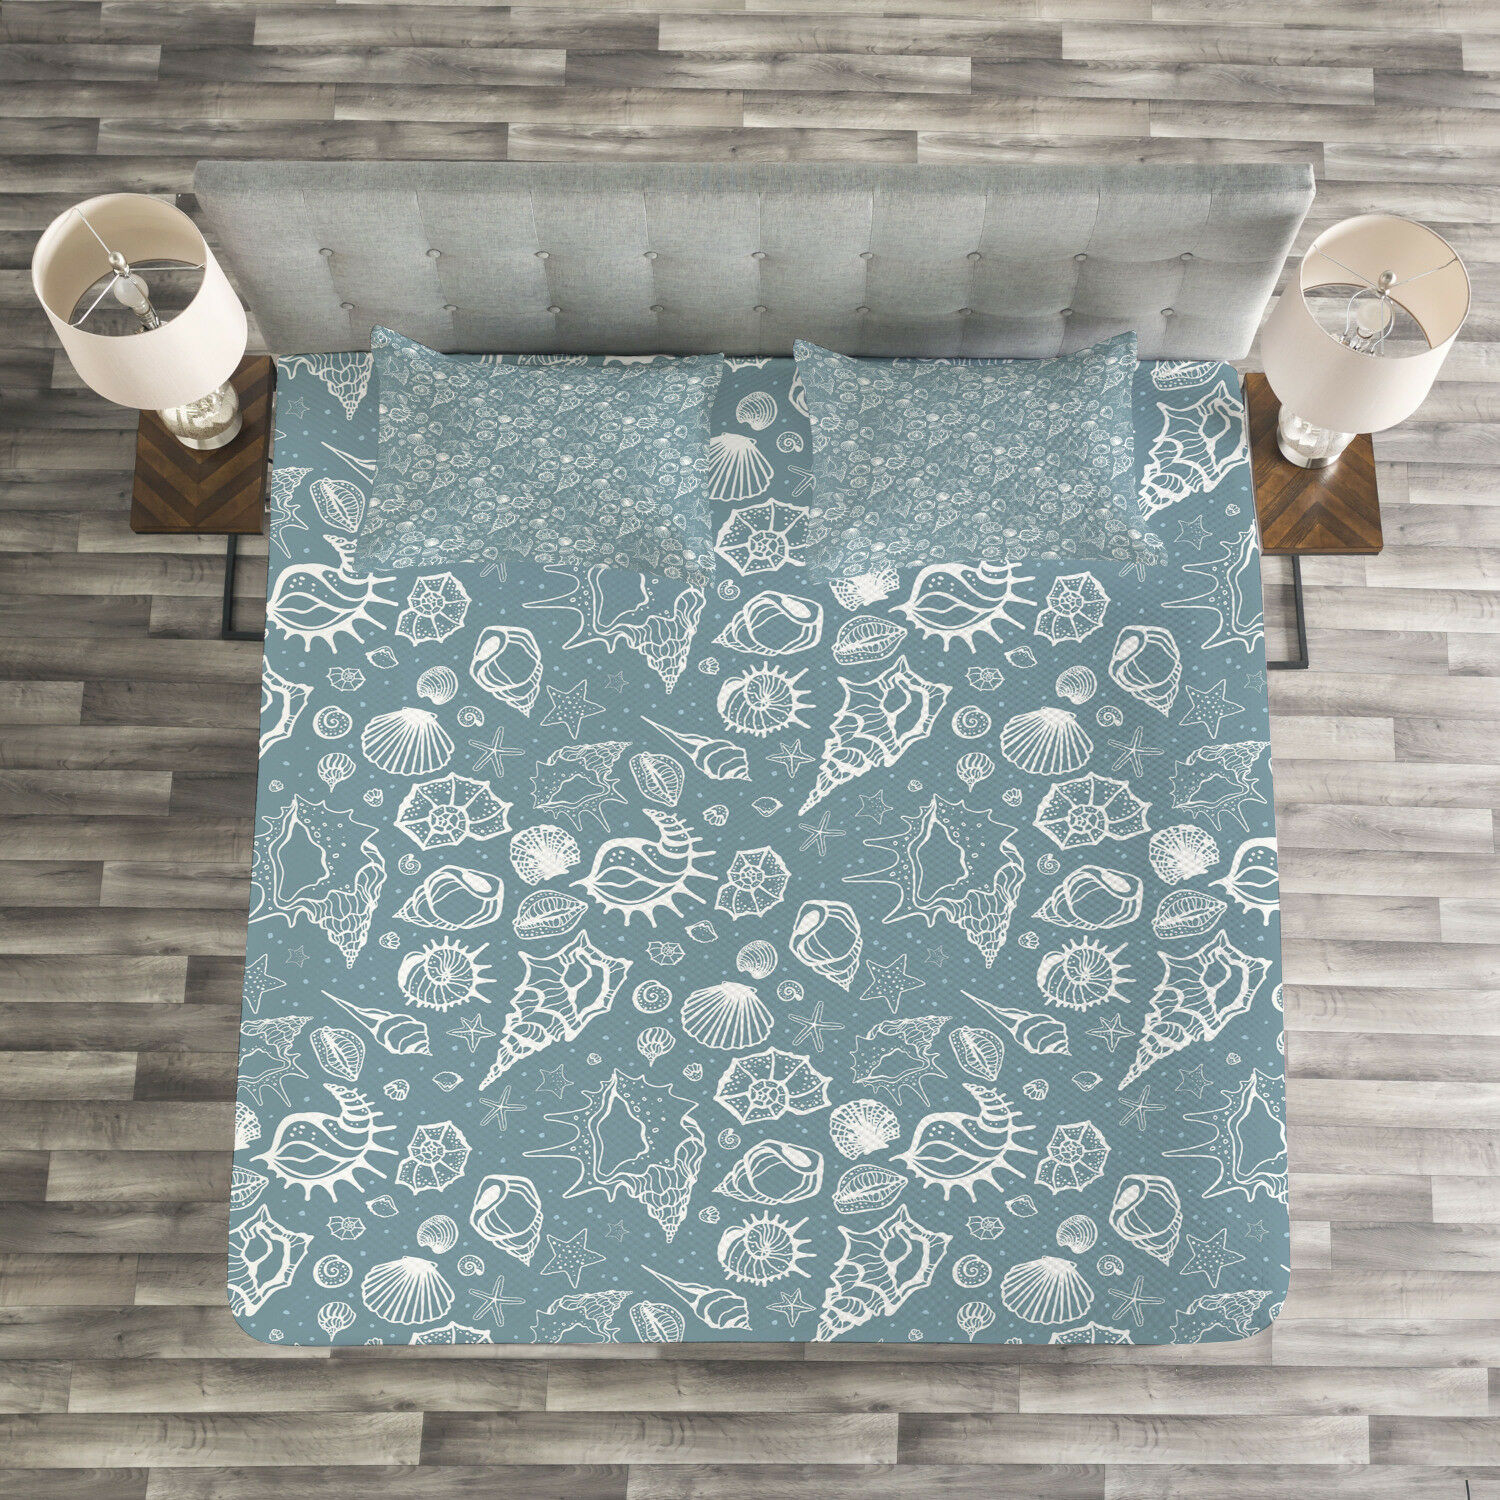 Sea Shells Quilted Bedspread & Pillow Shams Set, Doodle Style Pattern Print